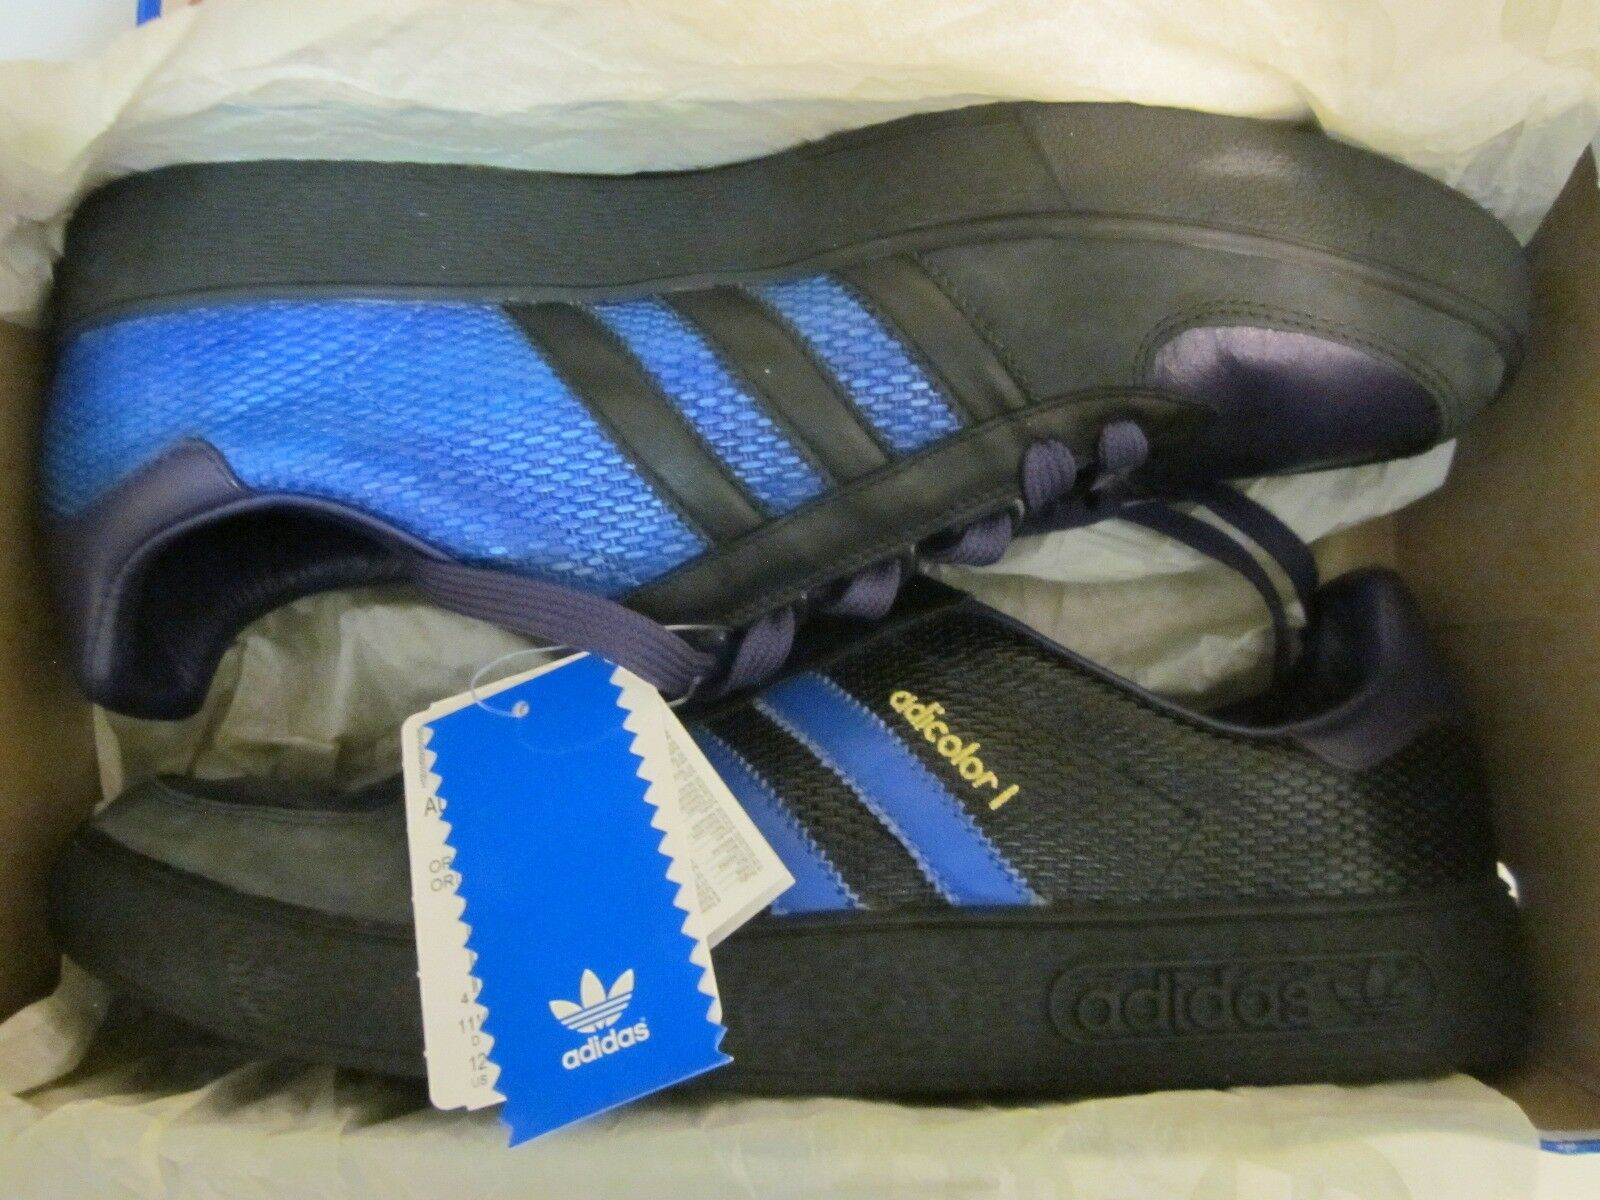 sale retailer 98a4f ae8c9 Adidas originals adicolor low men s size size size 12us new in box 8fed84